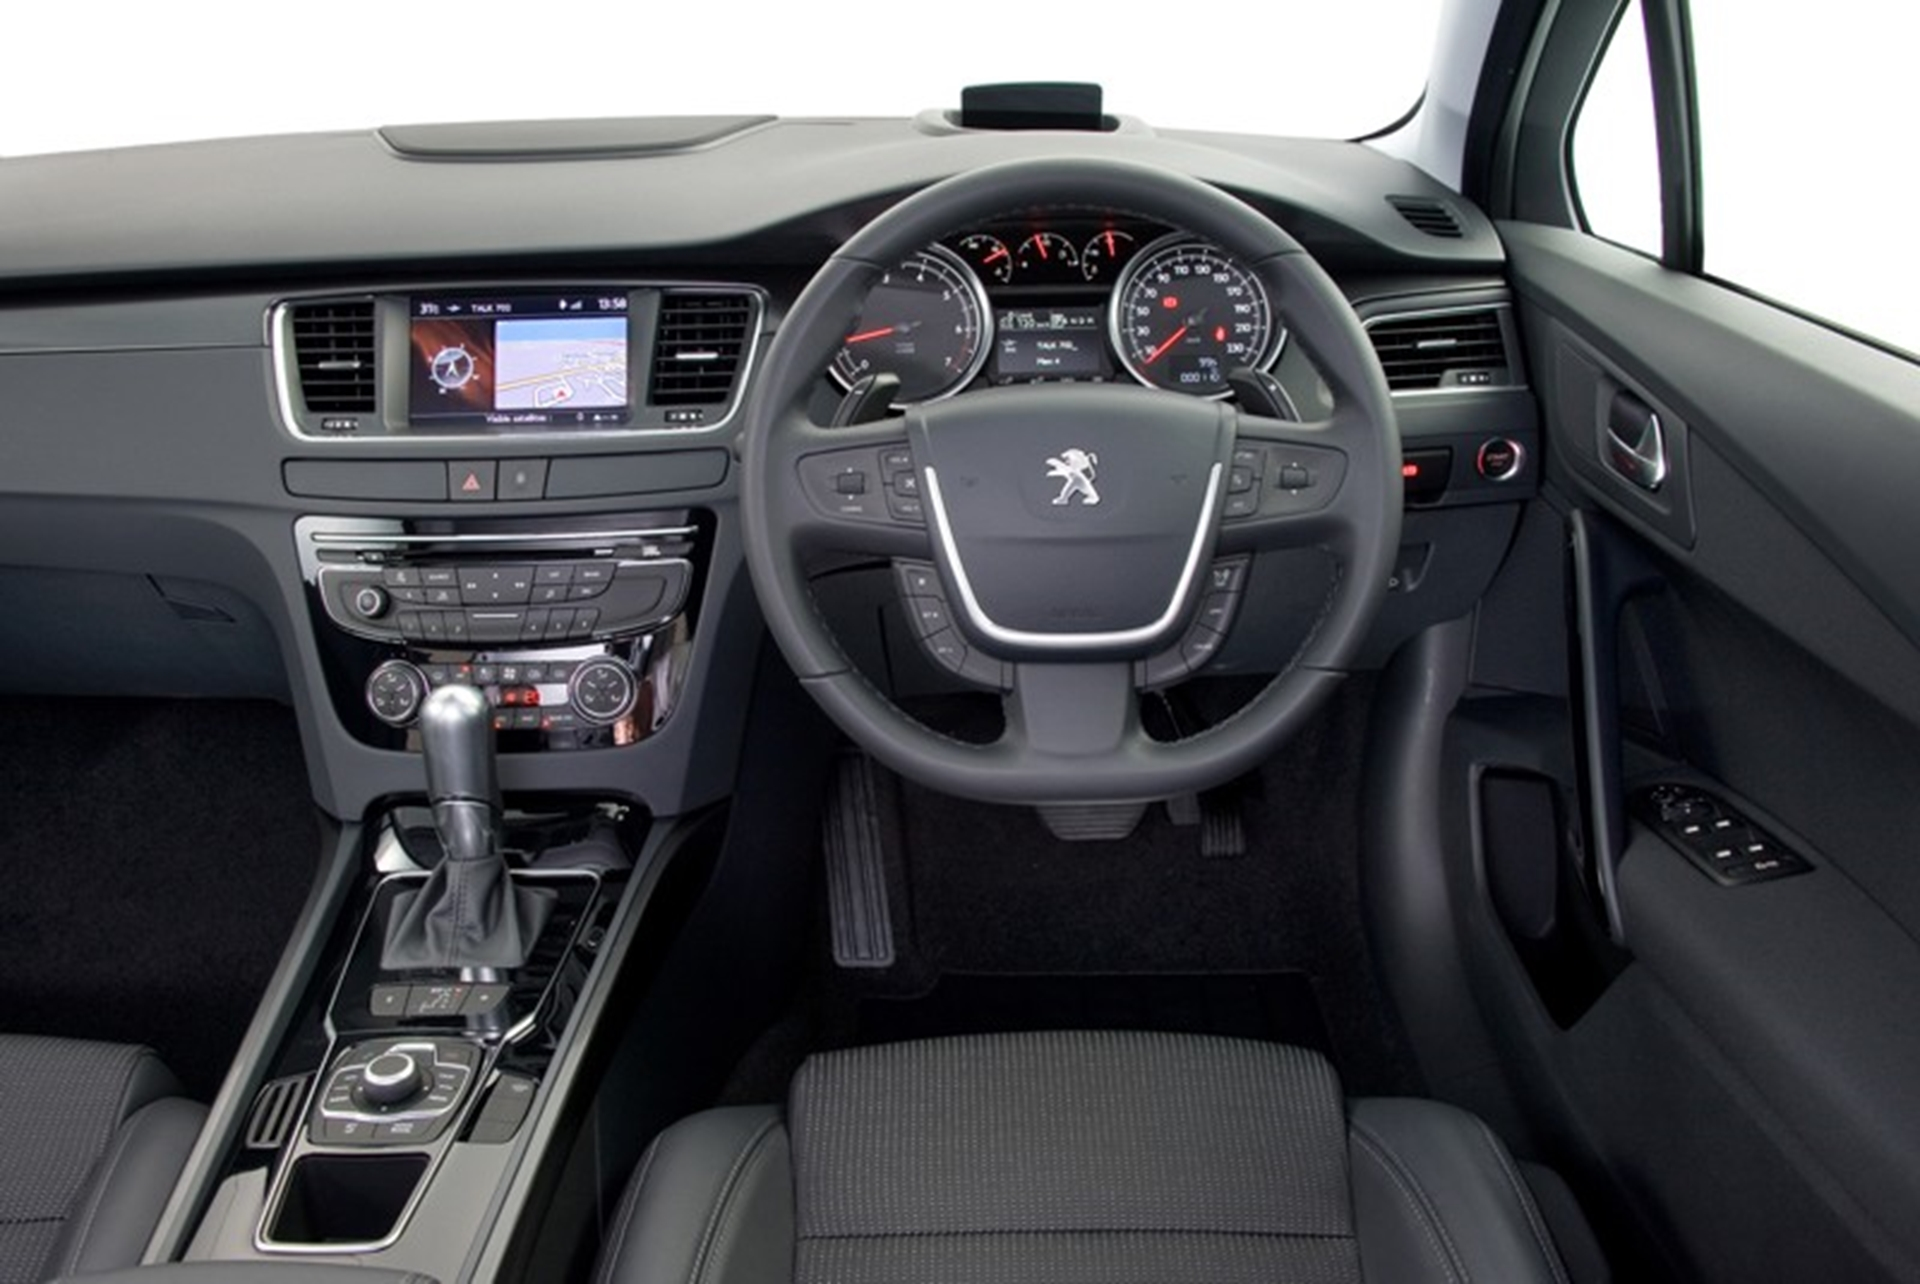 Image gallery peugeot 508 interior for Interior 508 peugeot